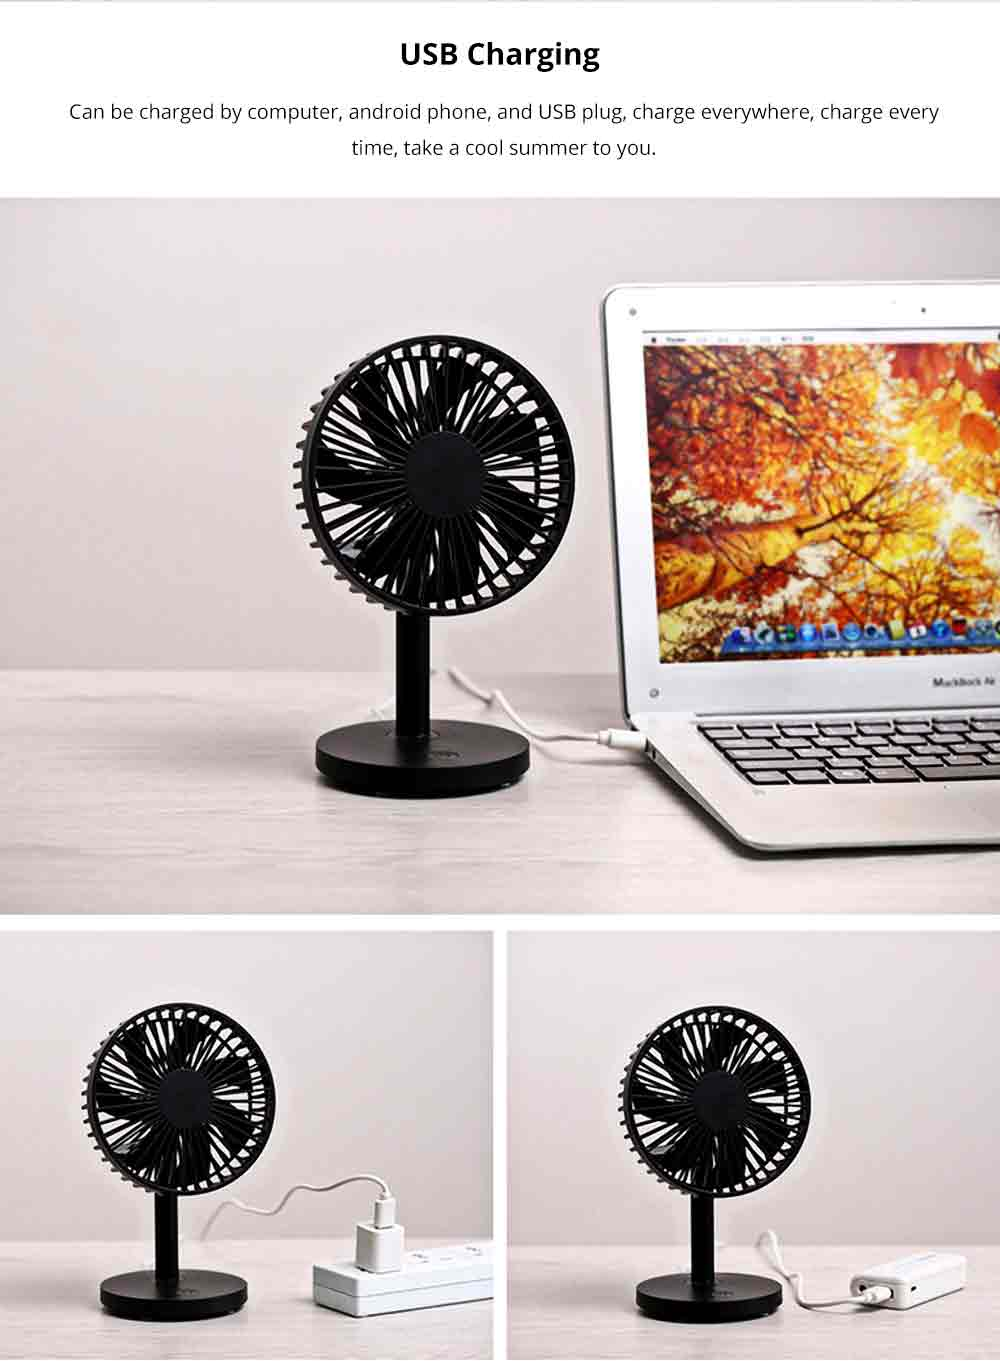 USB Desktop Mini Fan - USB Charge Mini Fan Cooling Air Desktop Hand Hold Portable Fan 3 Levels Adjustable 3